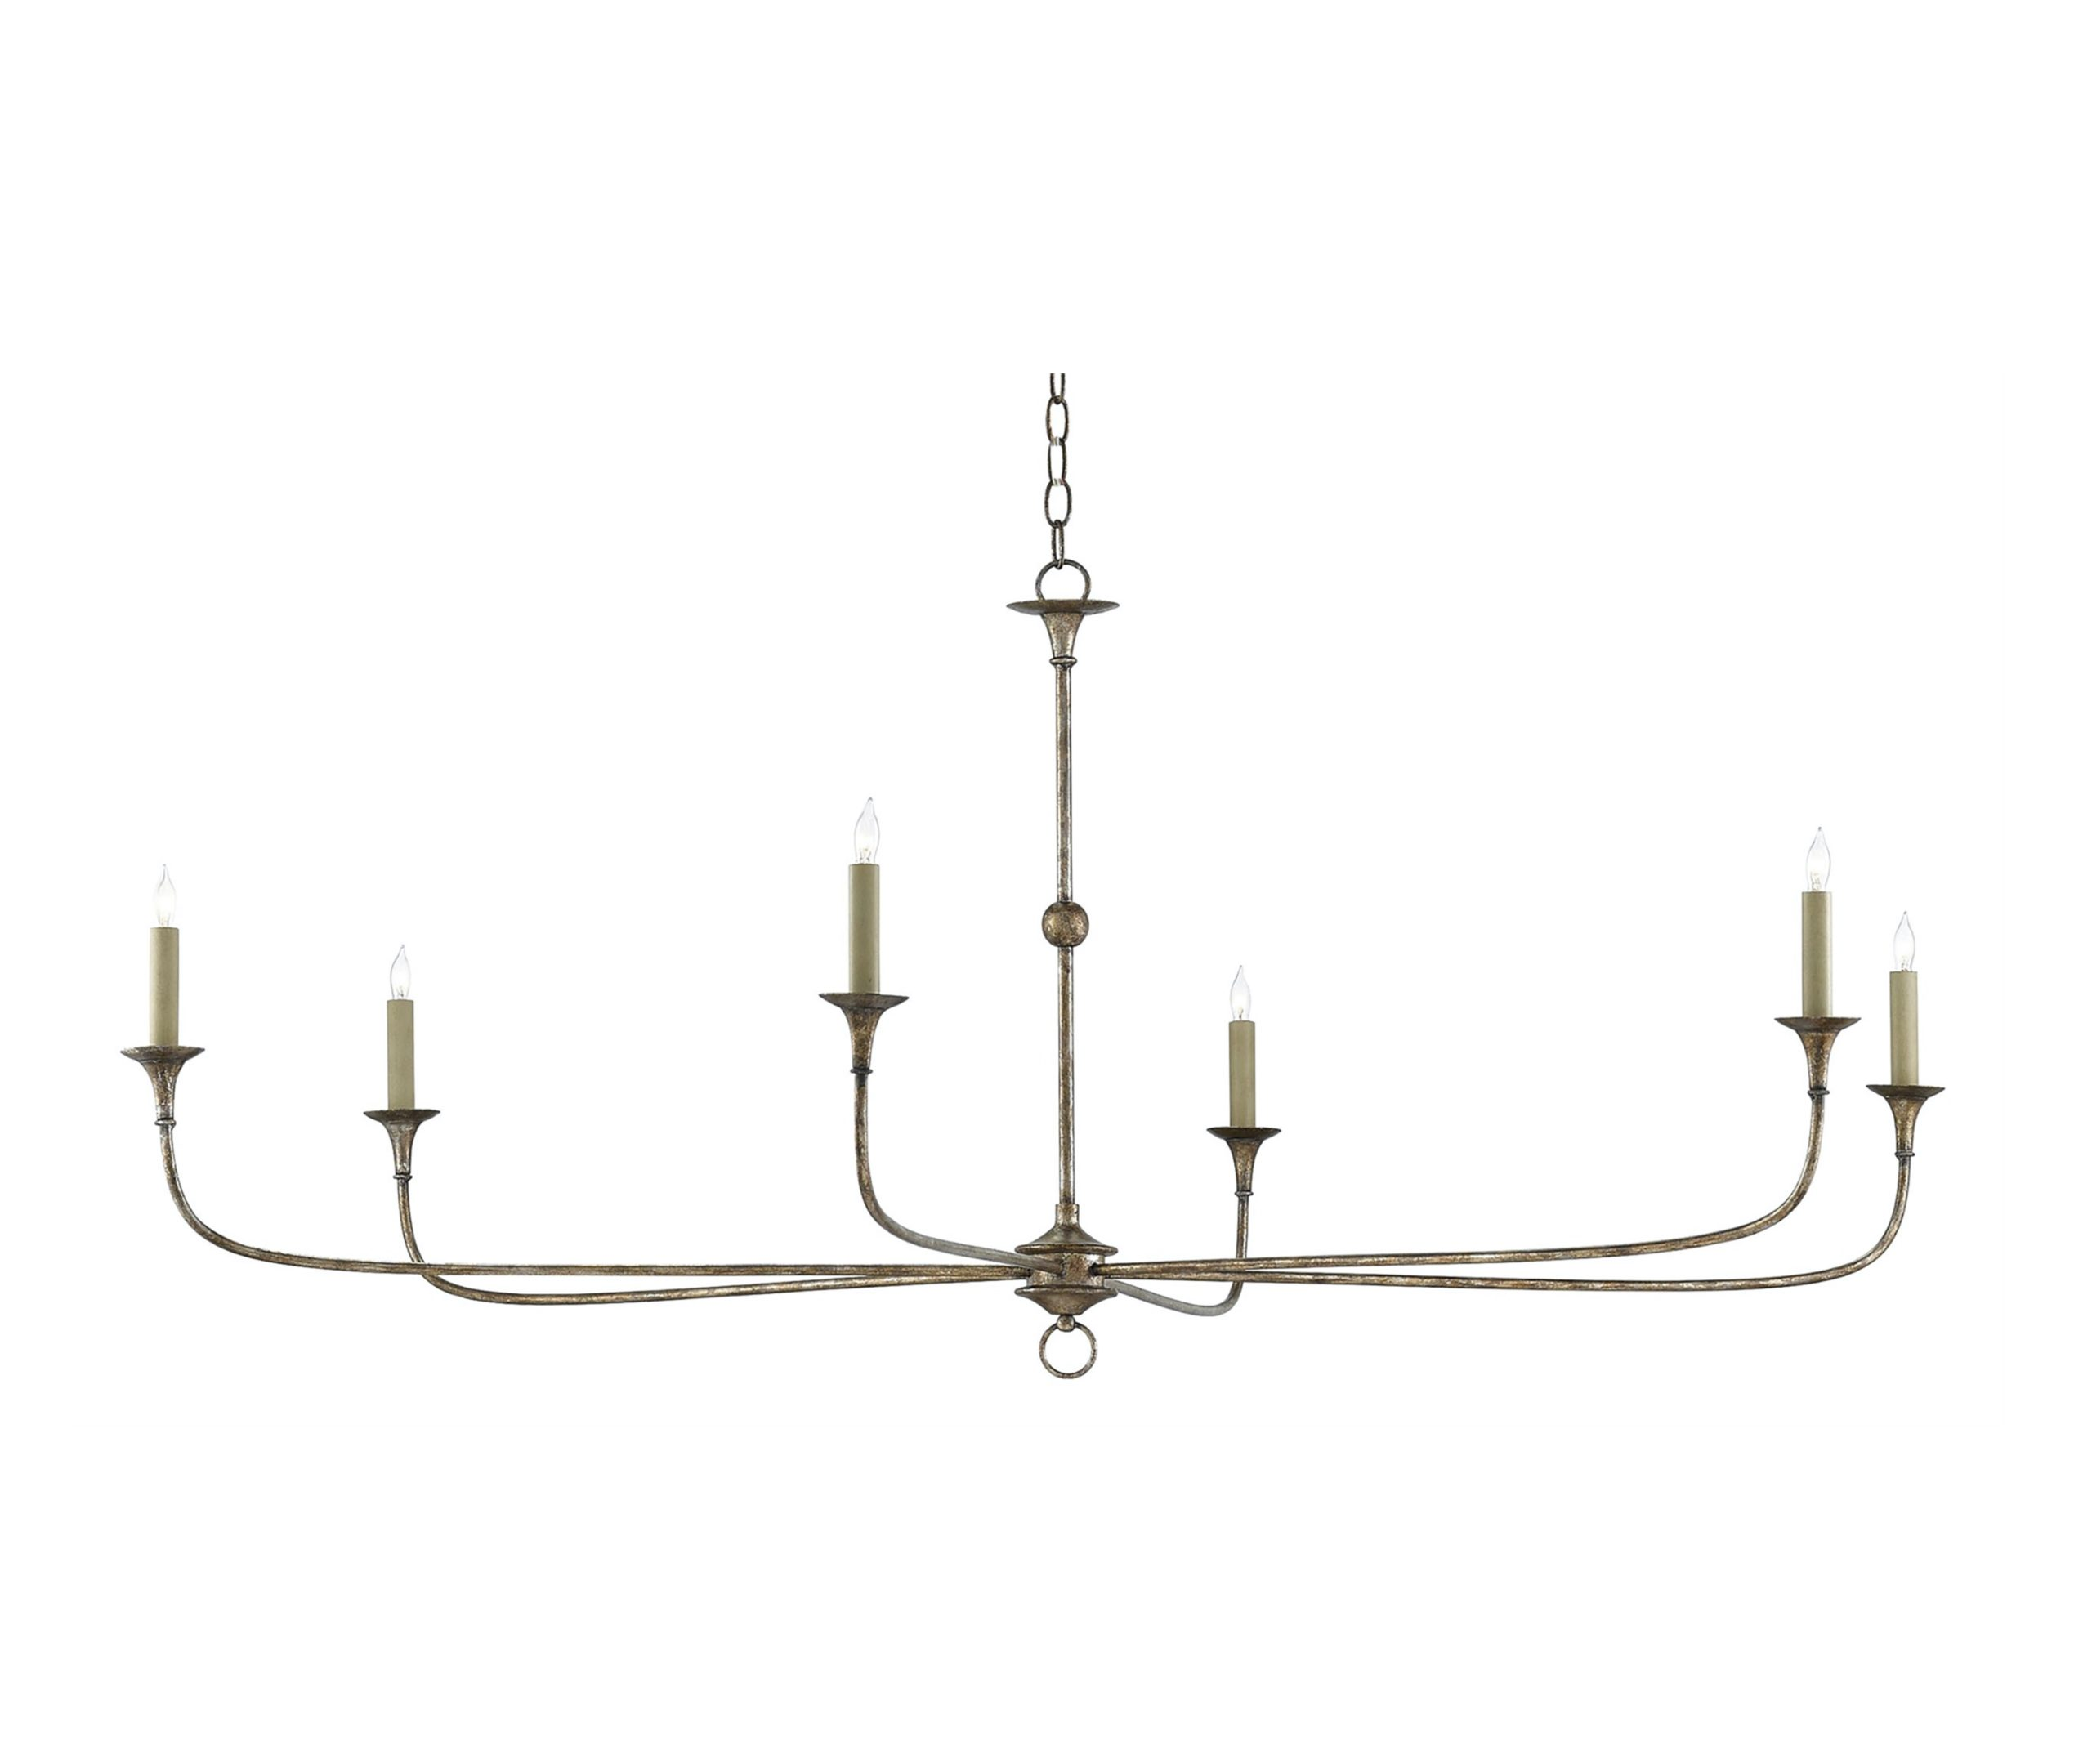 NYDC_WNWN_currey_and_co_products_nottaway_bronze_large_chandelier_9000-0135_